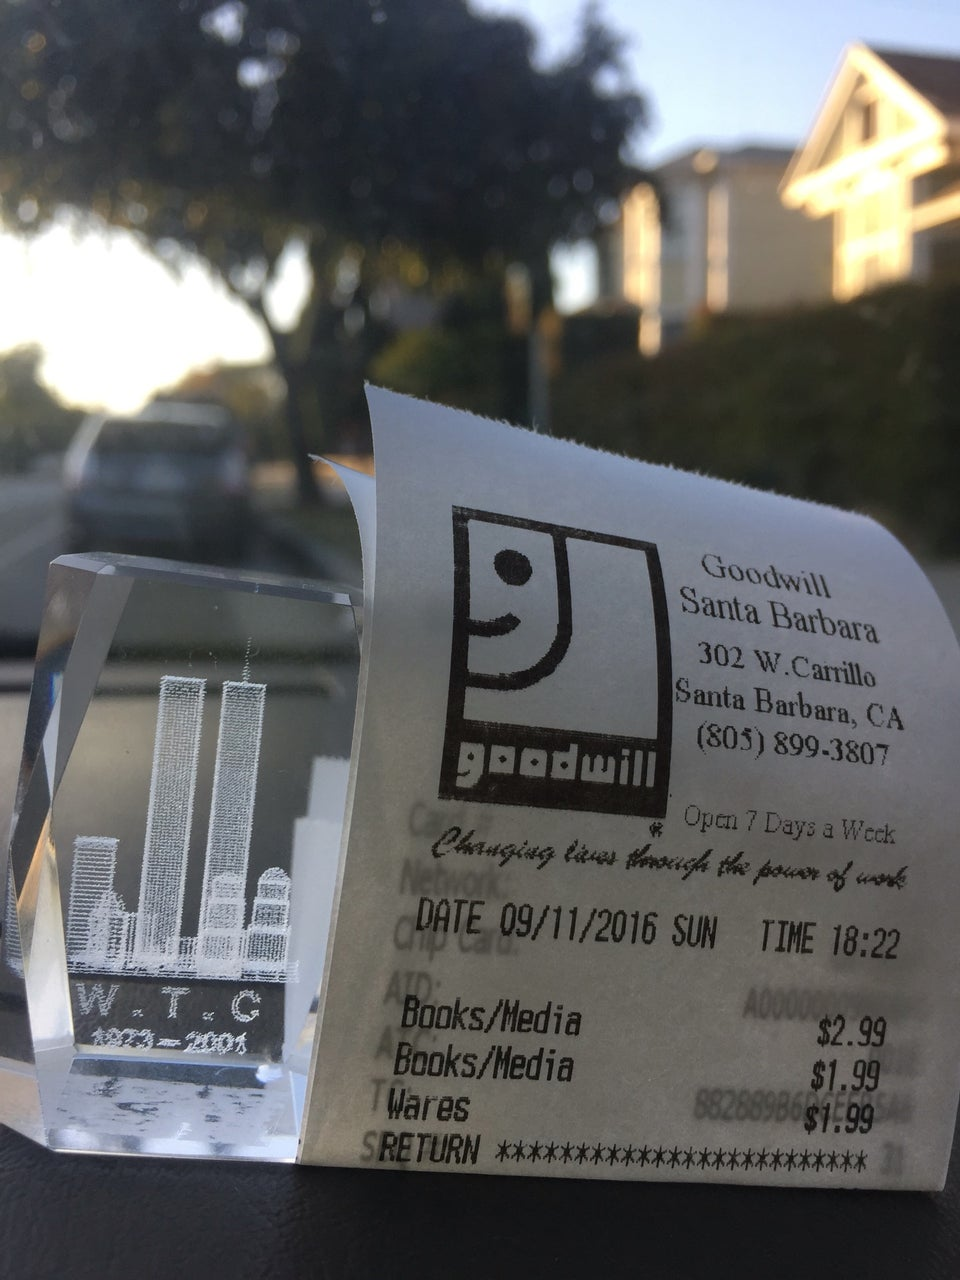 Goodwill Santa Barbara